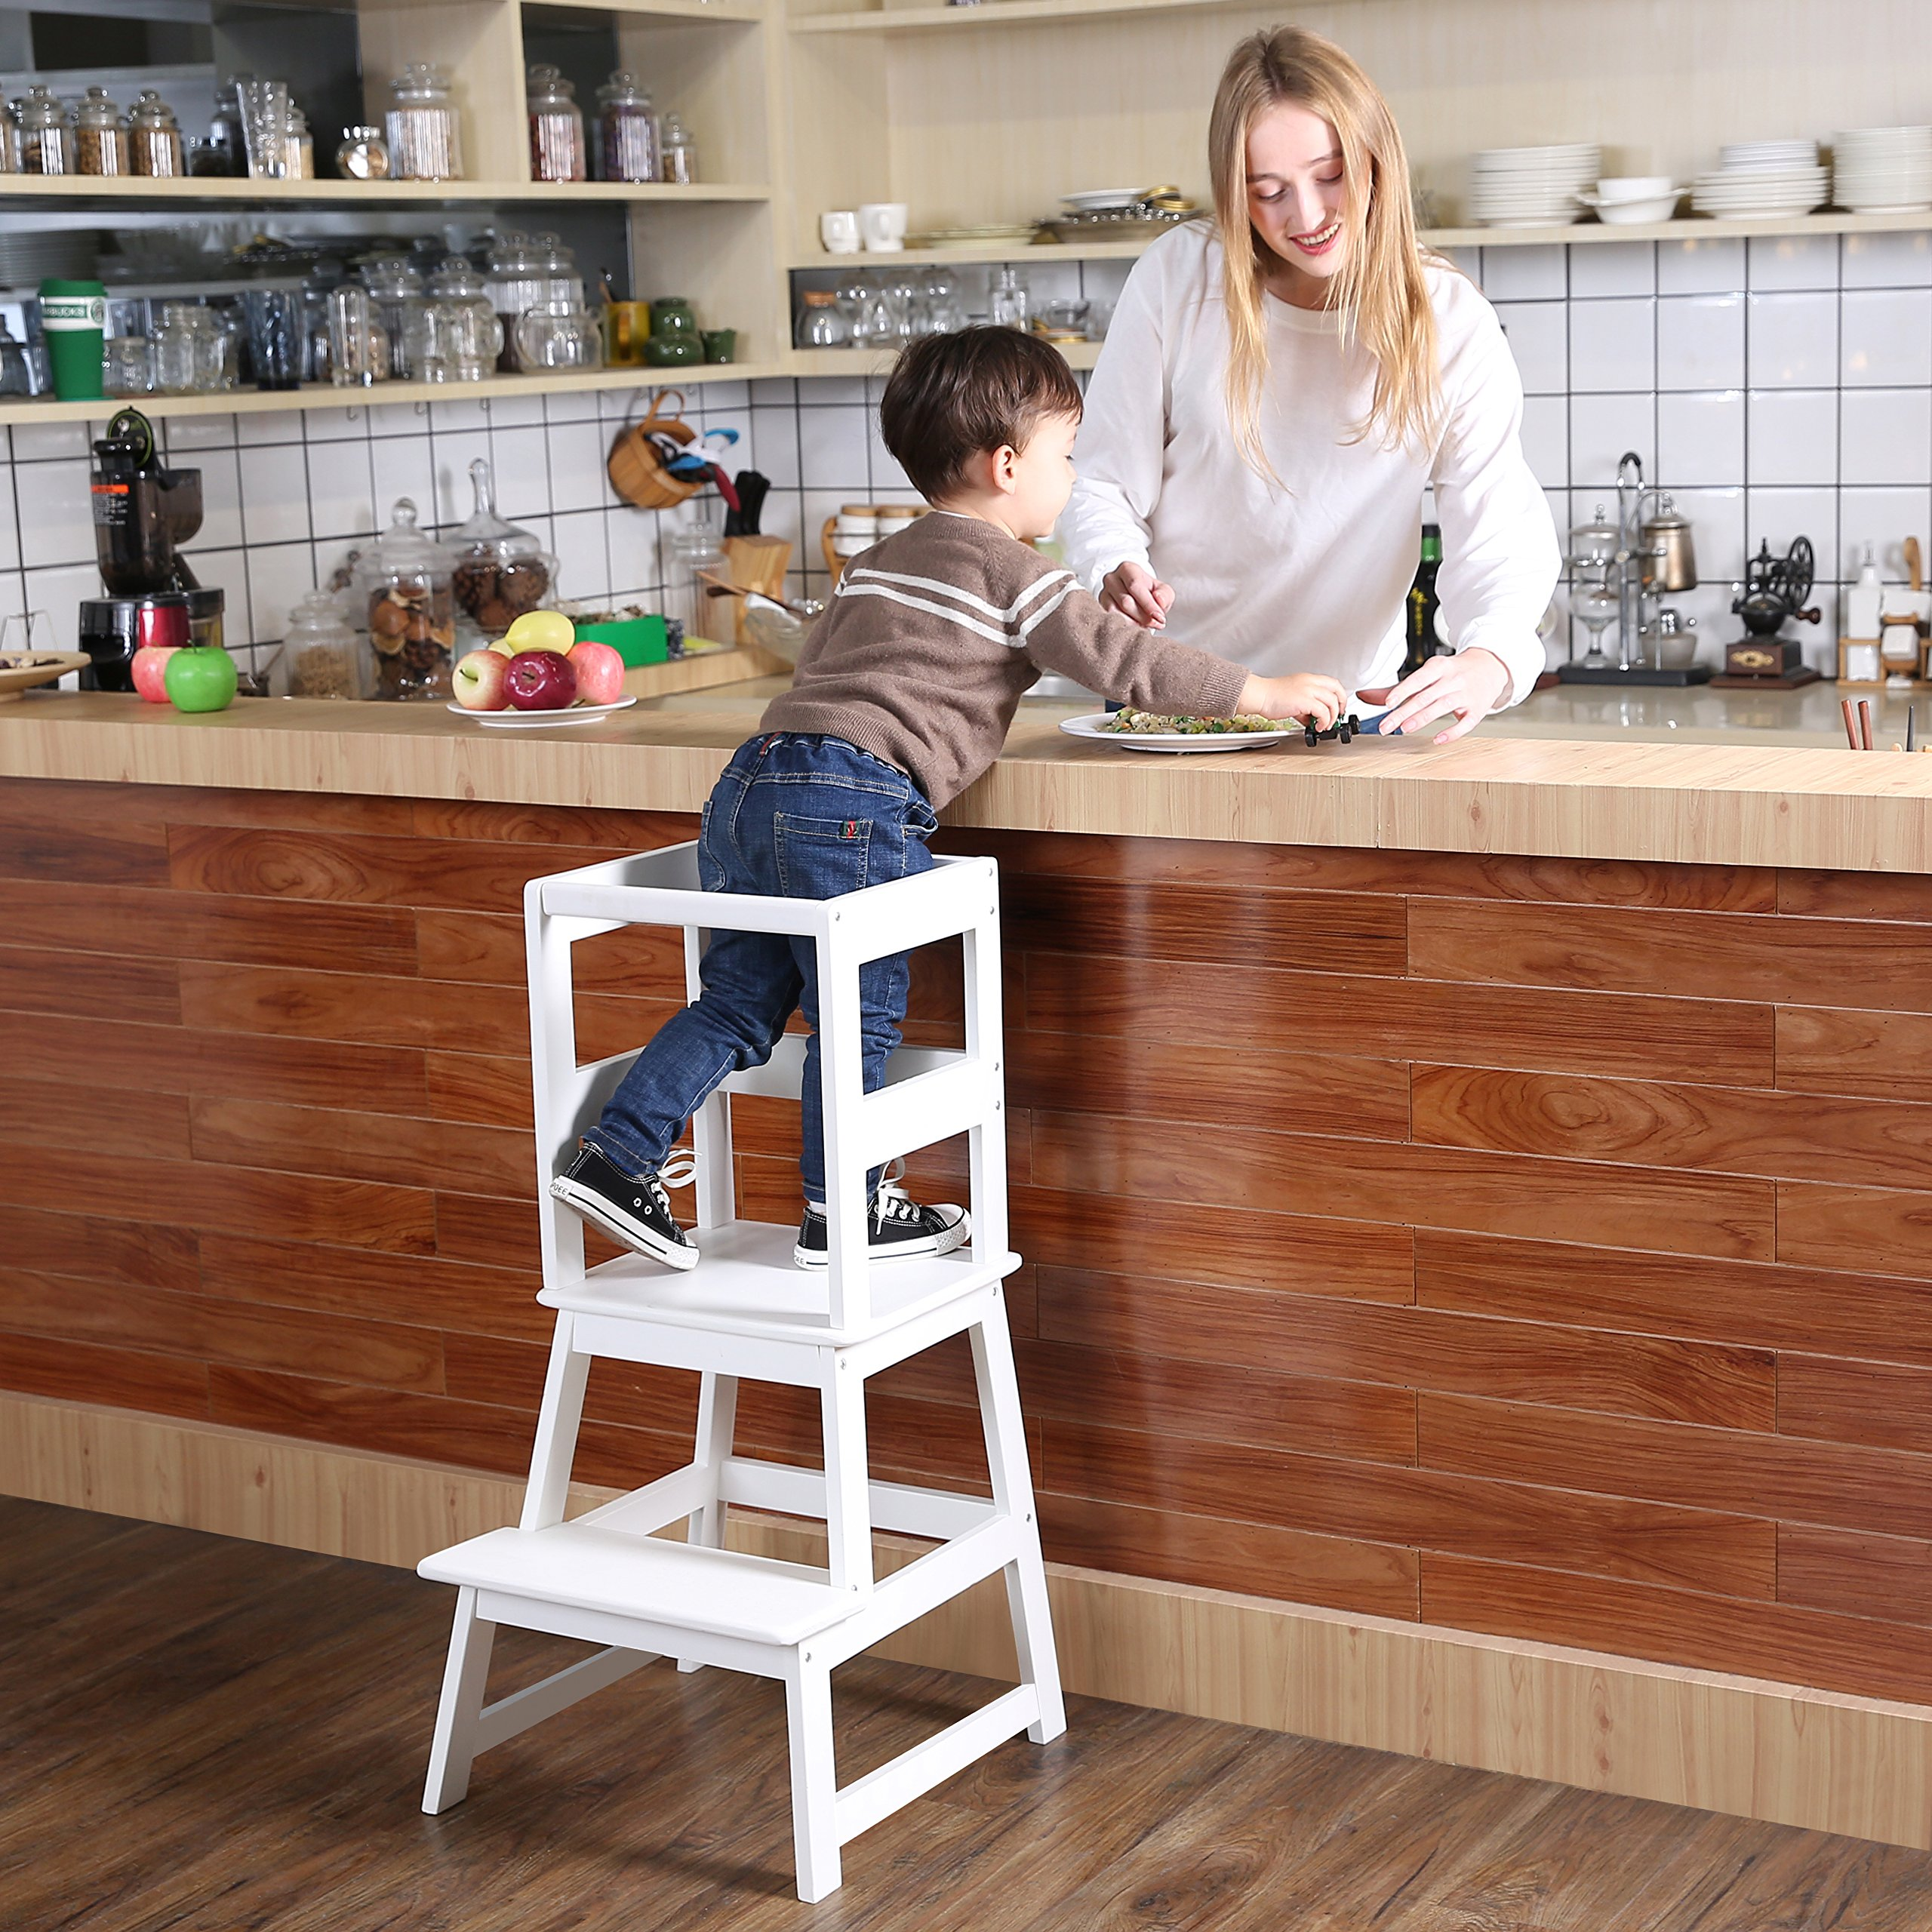 sdadi kids kitchen step stool safety rail cpsc certified toddlers 18 months older white unknown. Black Bedroom Furniture Sets. Home Design Ideas